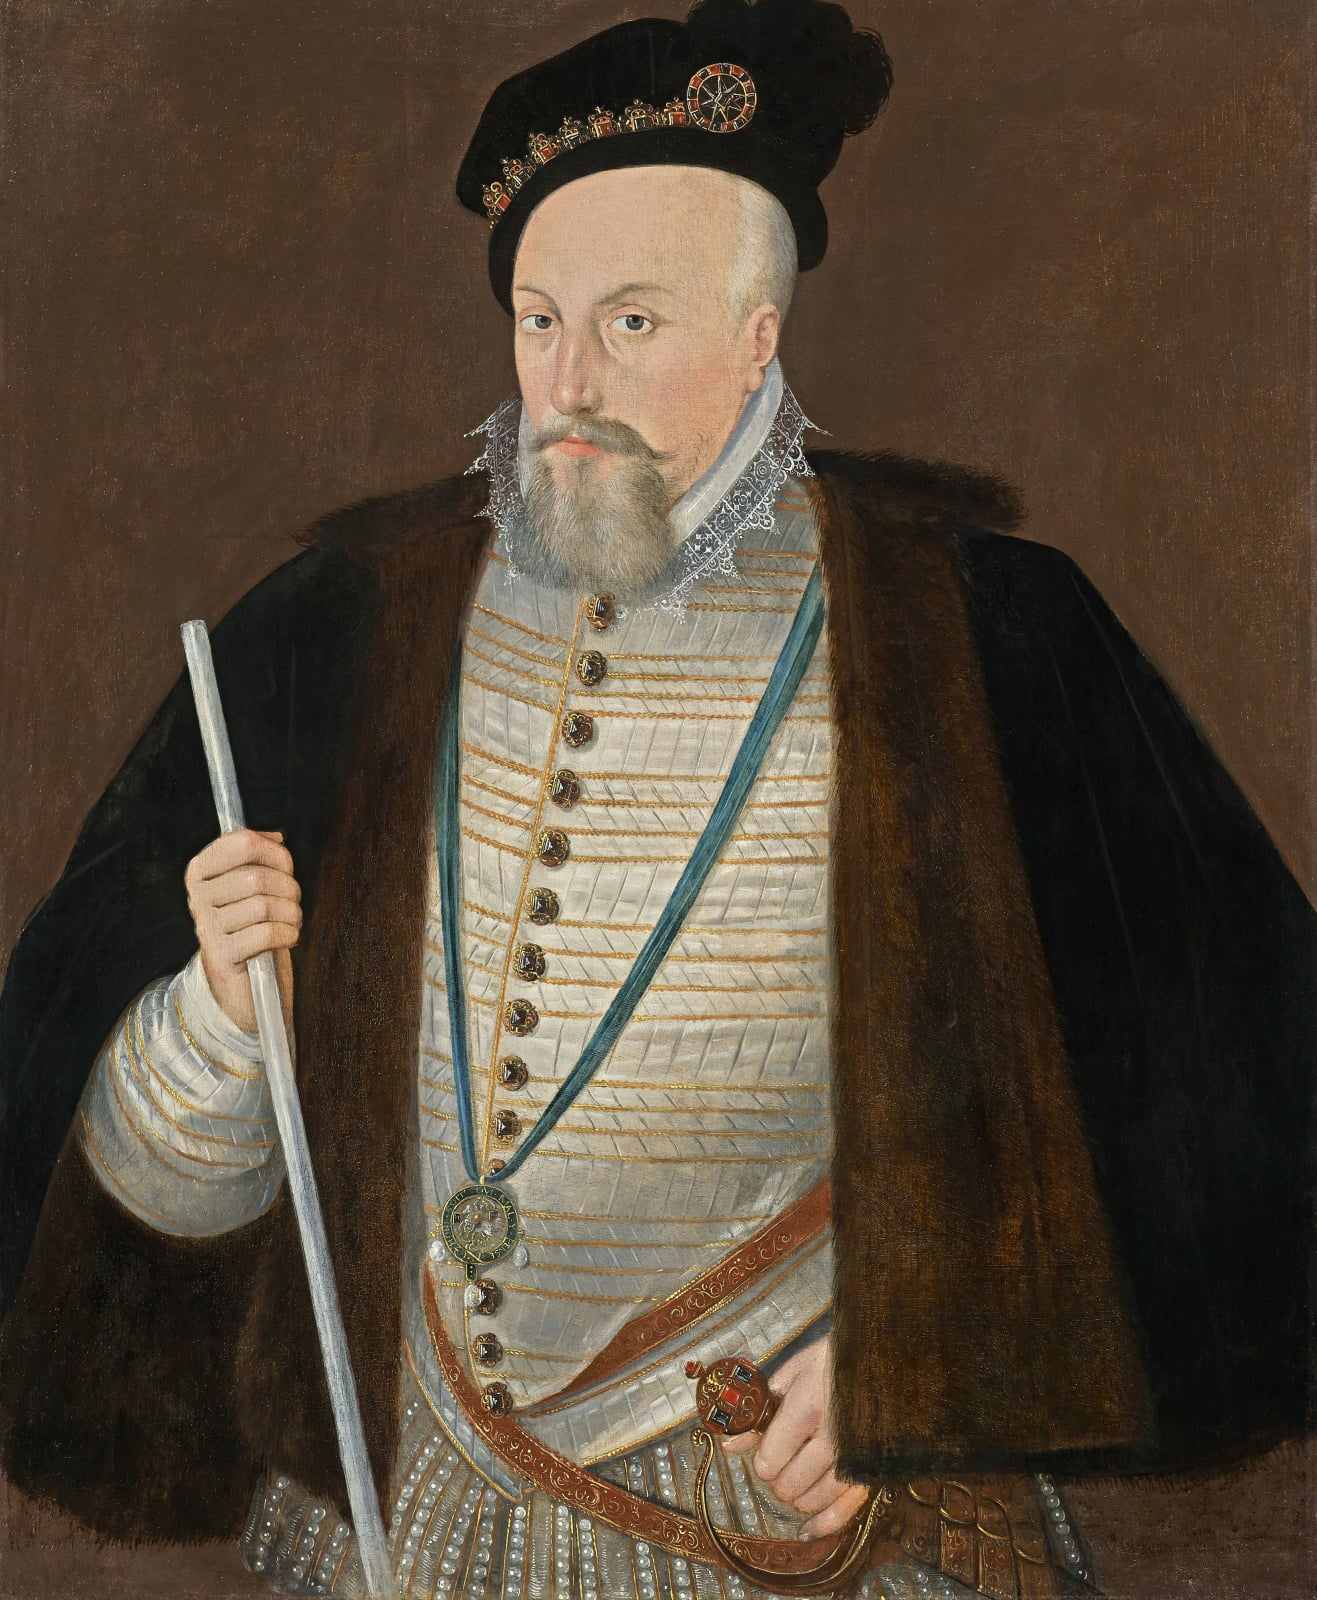 Robert Dudley, 1st Earl of Leicester (1532 – 1588)